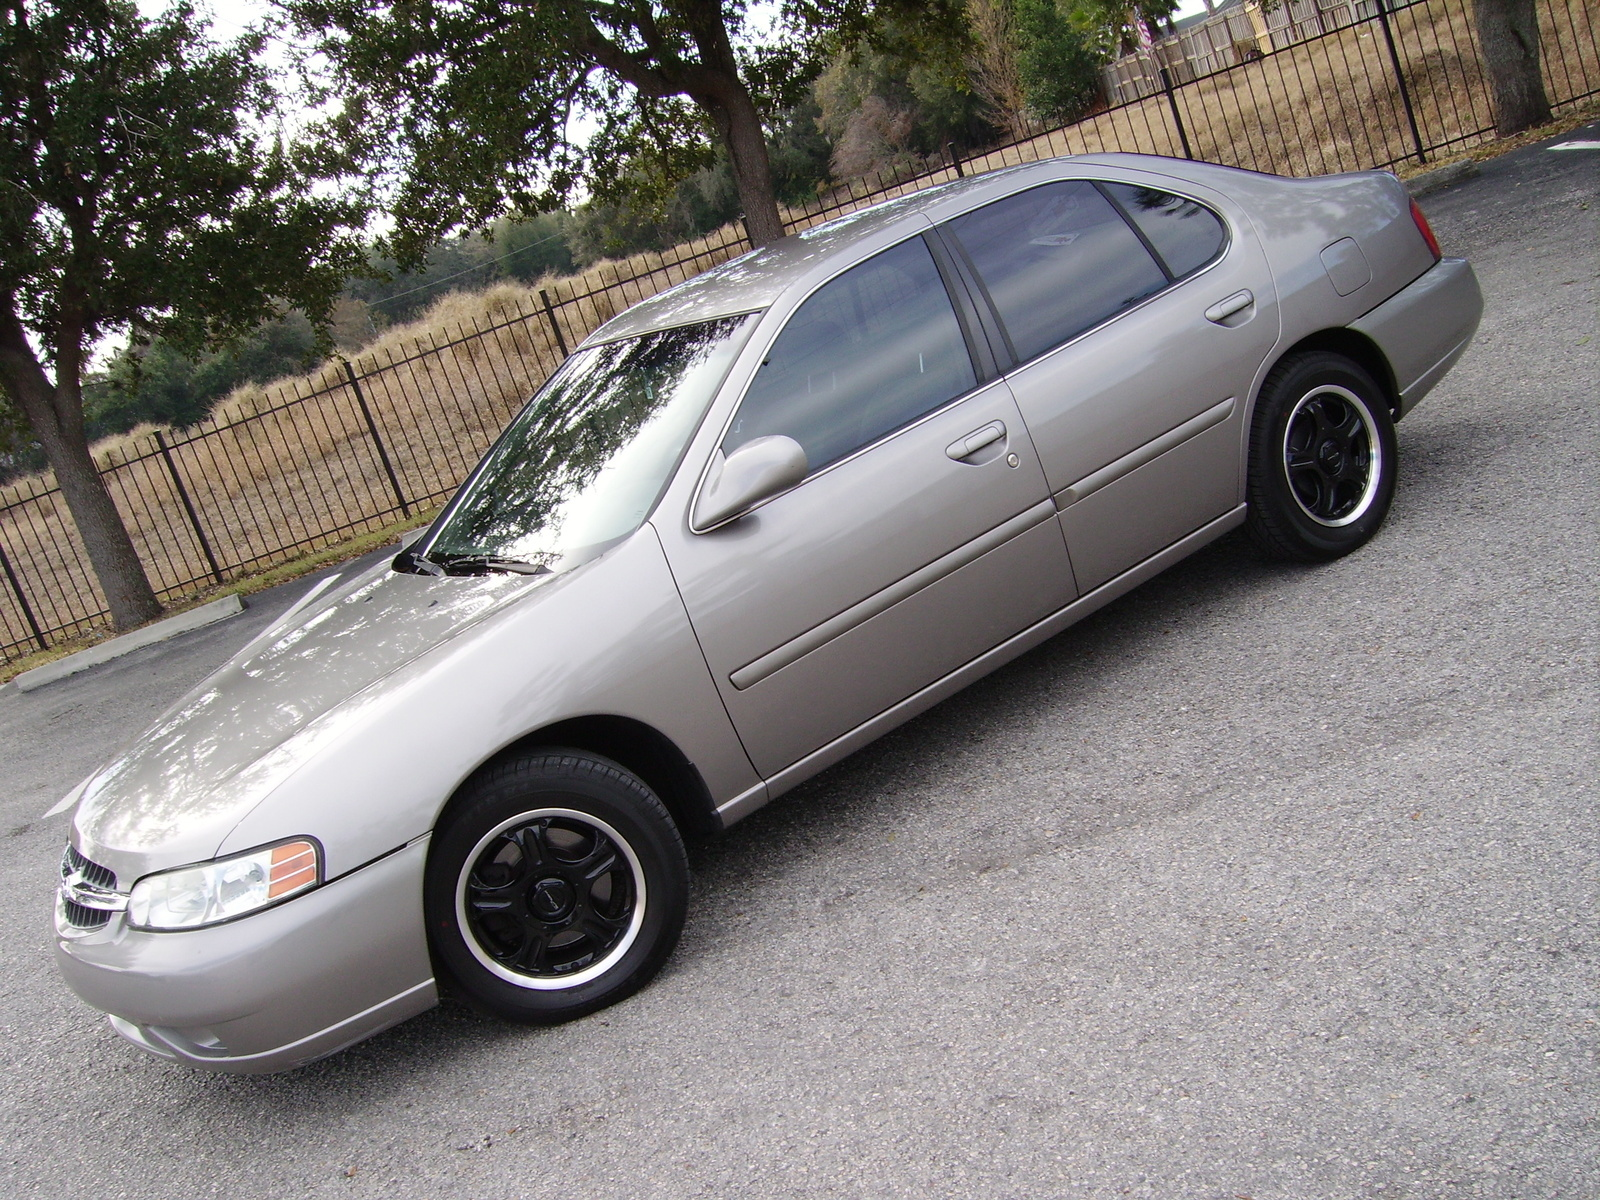 Picture of 2000 Nissan Altima GXE, exterior, gallery_worthy